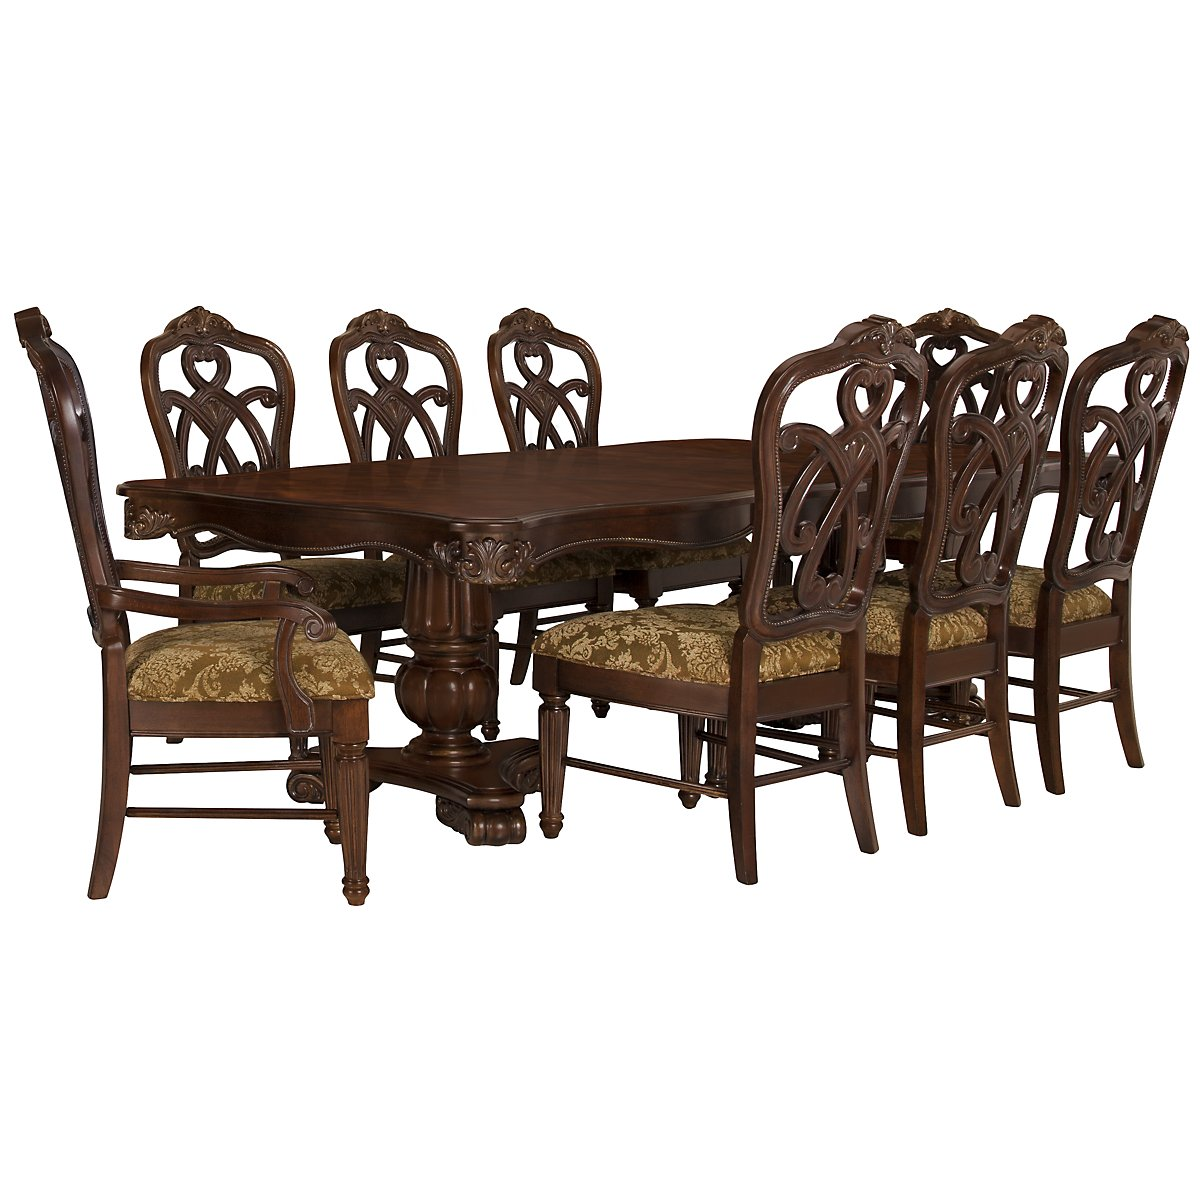 Regal Dark Tone Wood Table & 4 Wood Chairs